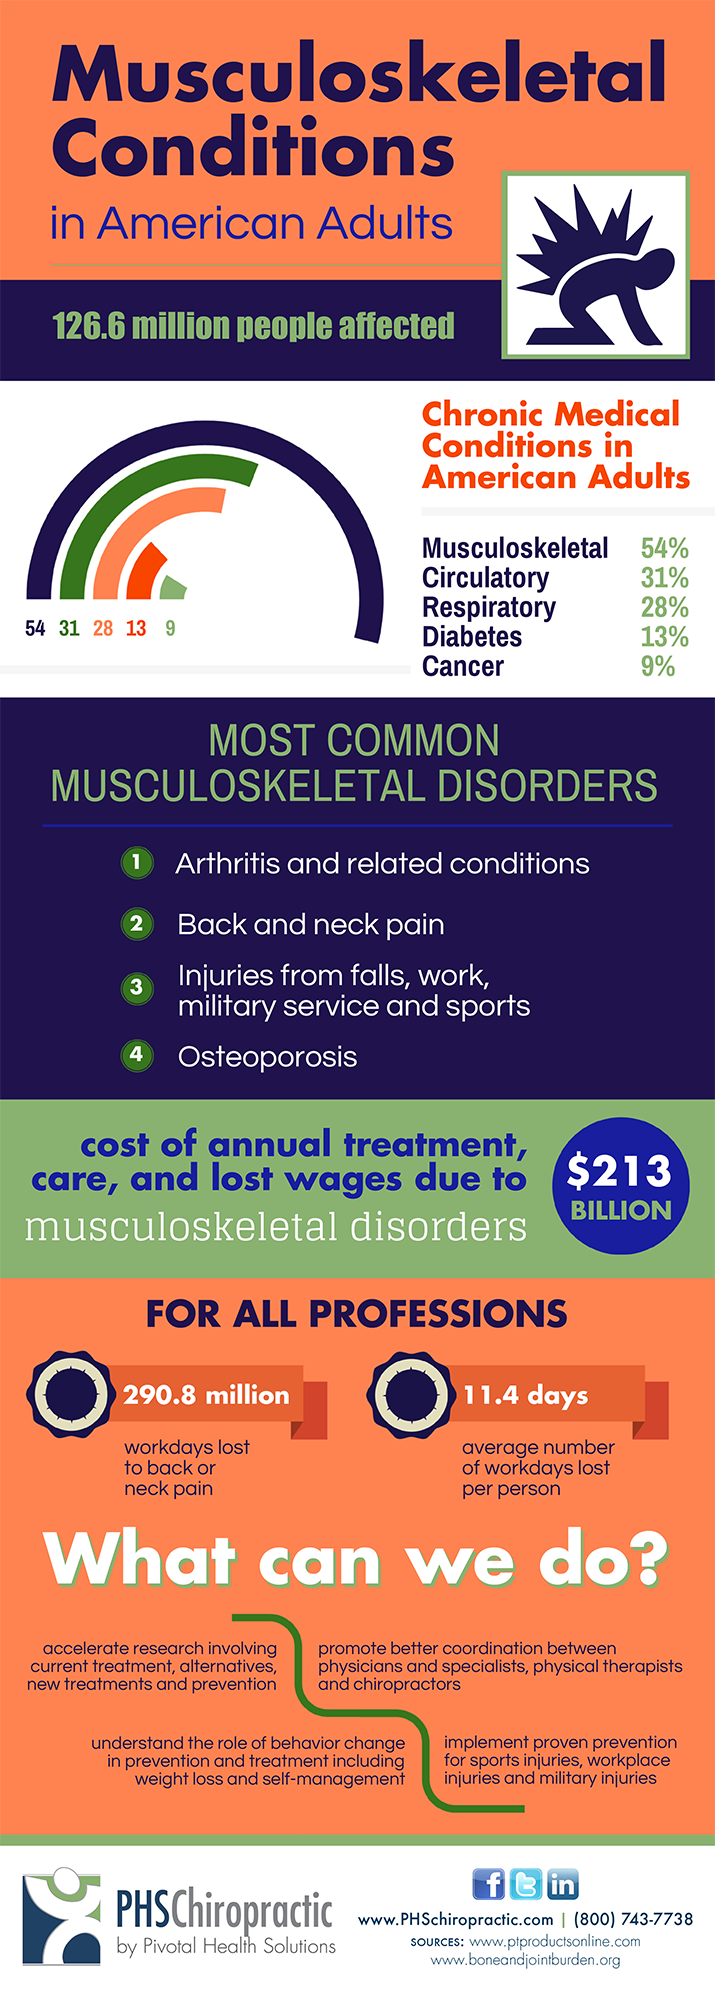 03-24-16-Musculoskeletal-Conditions.png